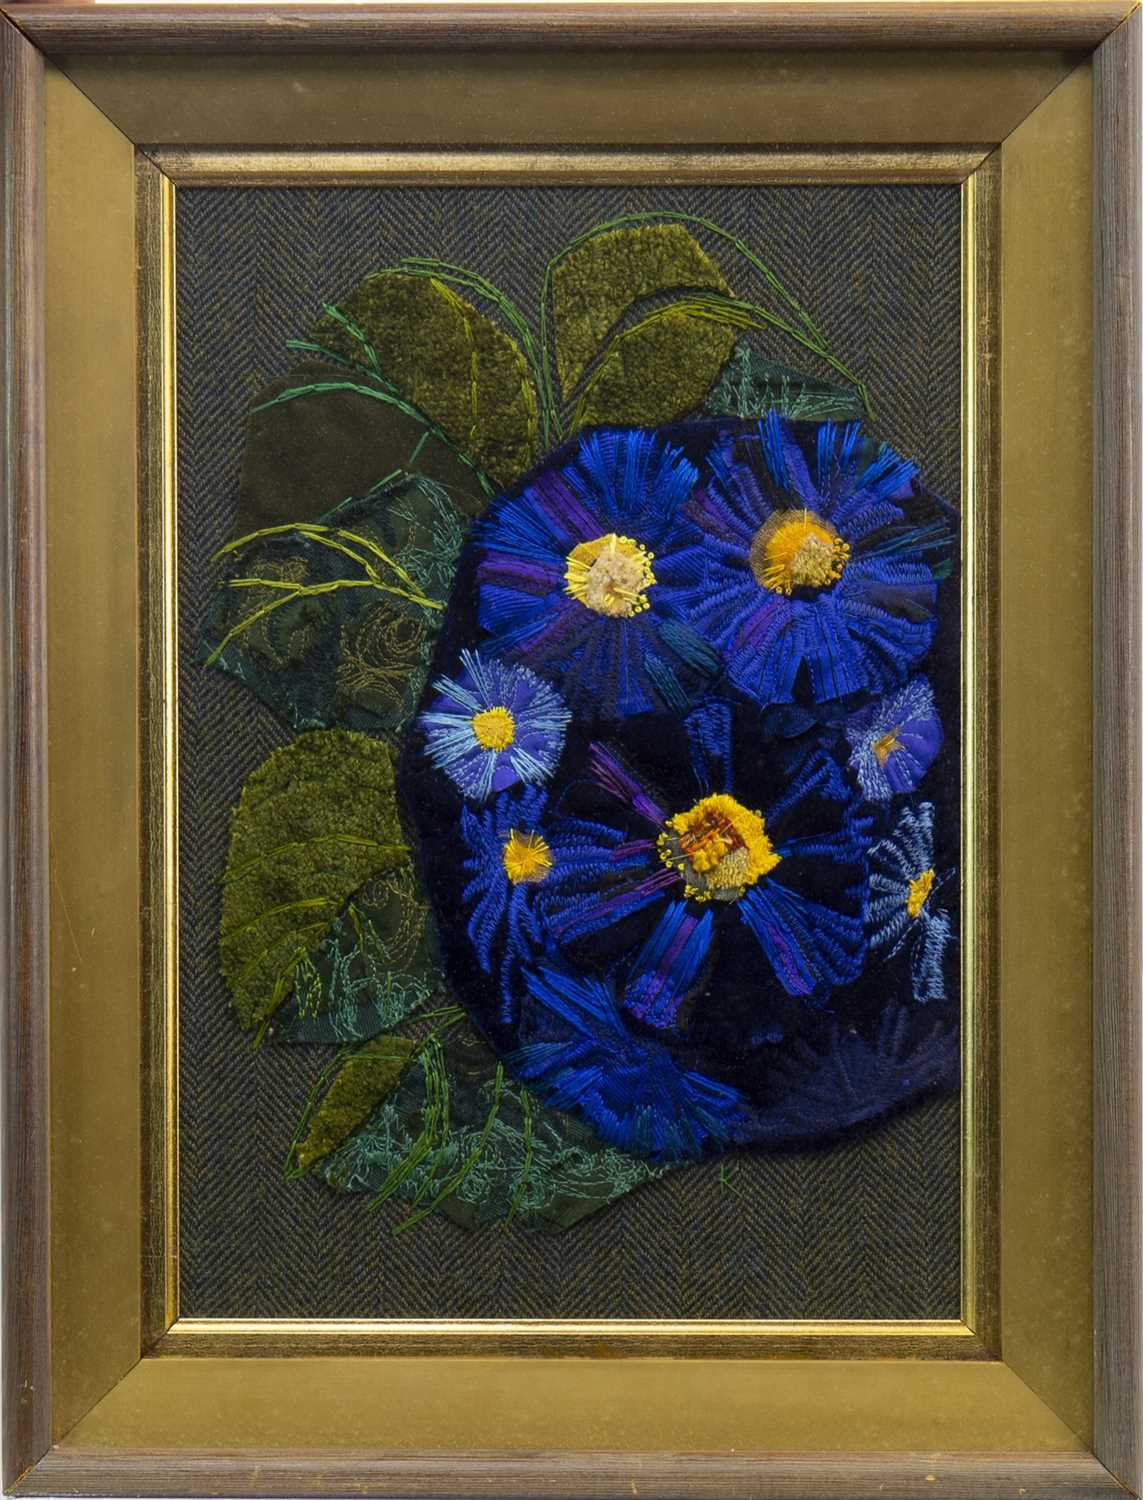 Lot 528-BLUE POSY, A TEXTILE INSTALLATION BY KIRSTY MCFARLANE